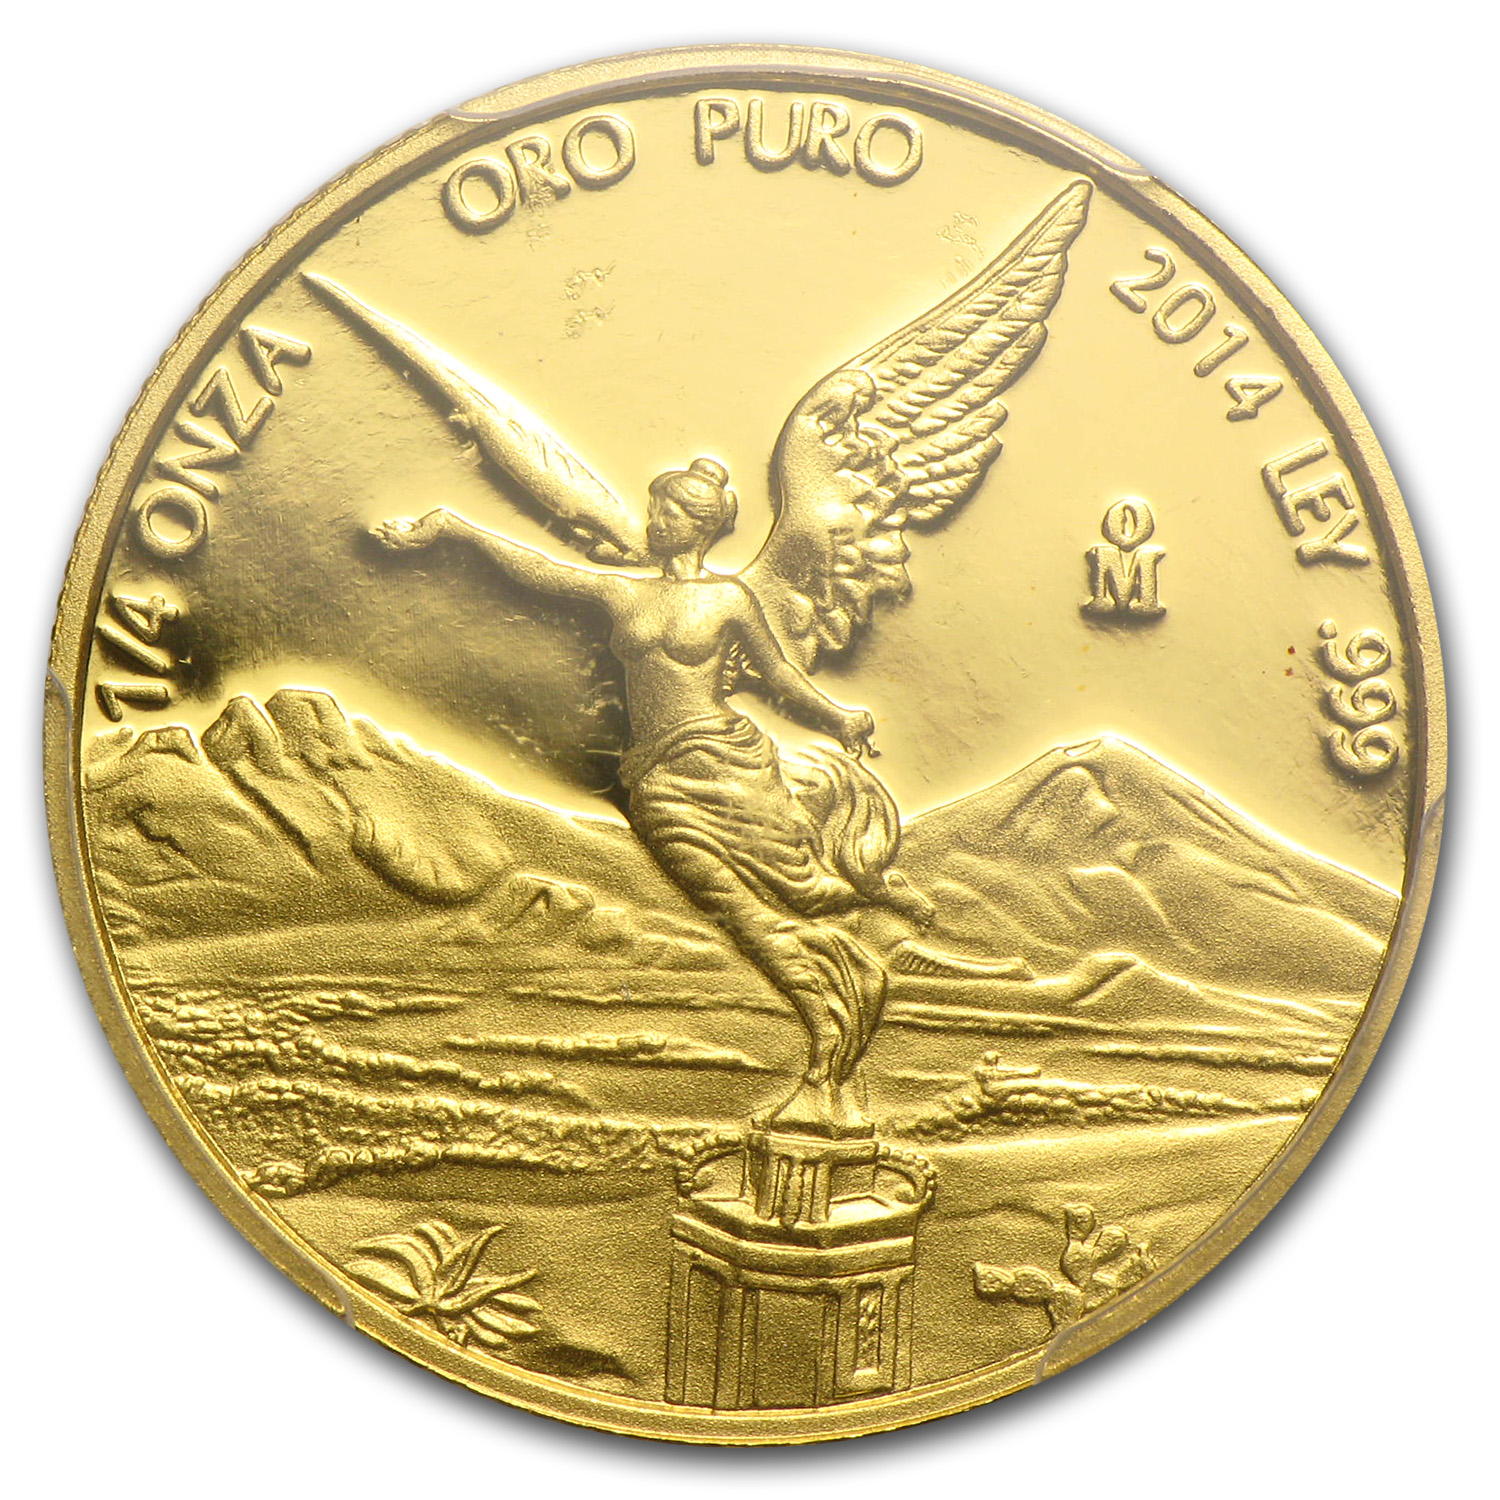 2014 Mexico 1/4 oz Proof Gold Libertad PR-69 PCGS